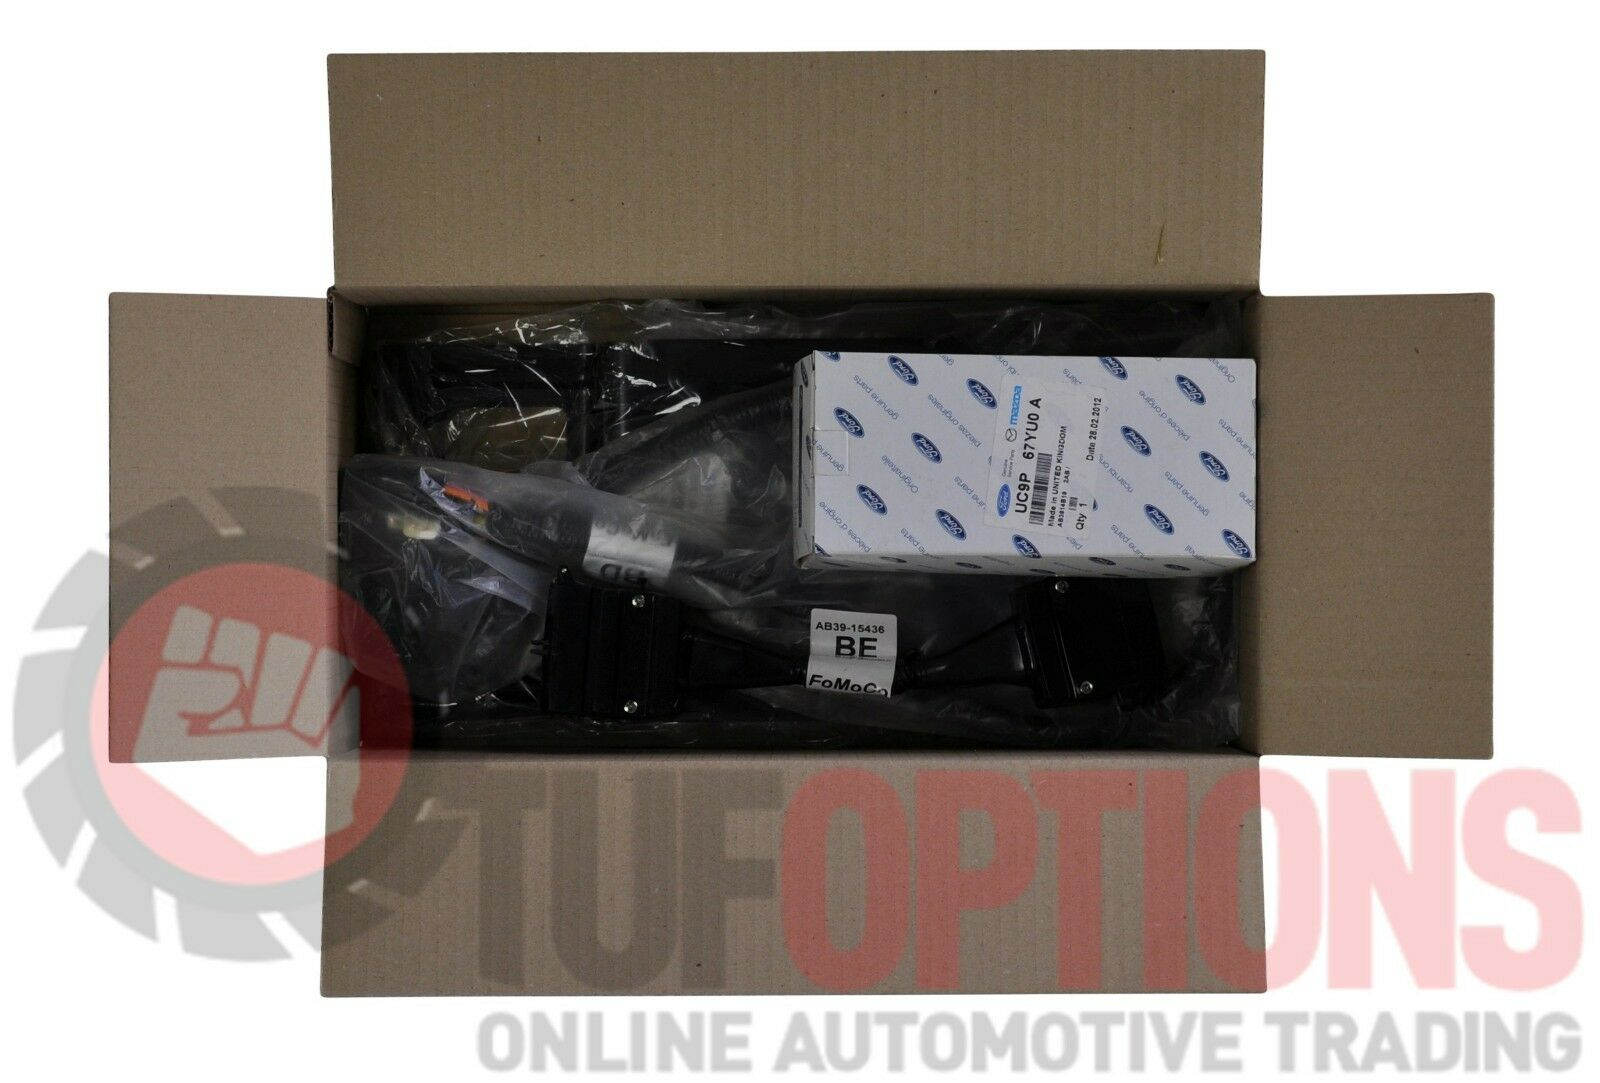 New Genuine Ford Px Ranger Trailer Towbar Wiring Harness Kit Led Picing Kits 1 Of 12only 2 Available